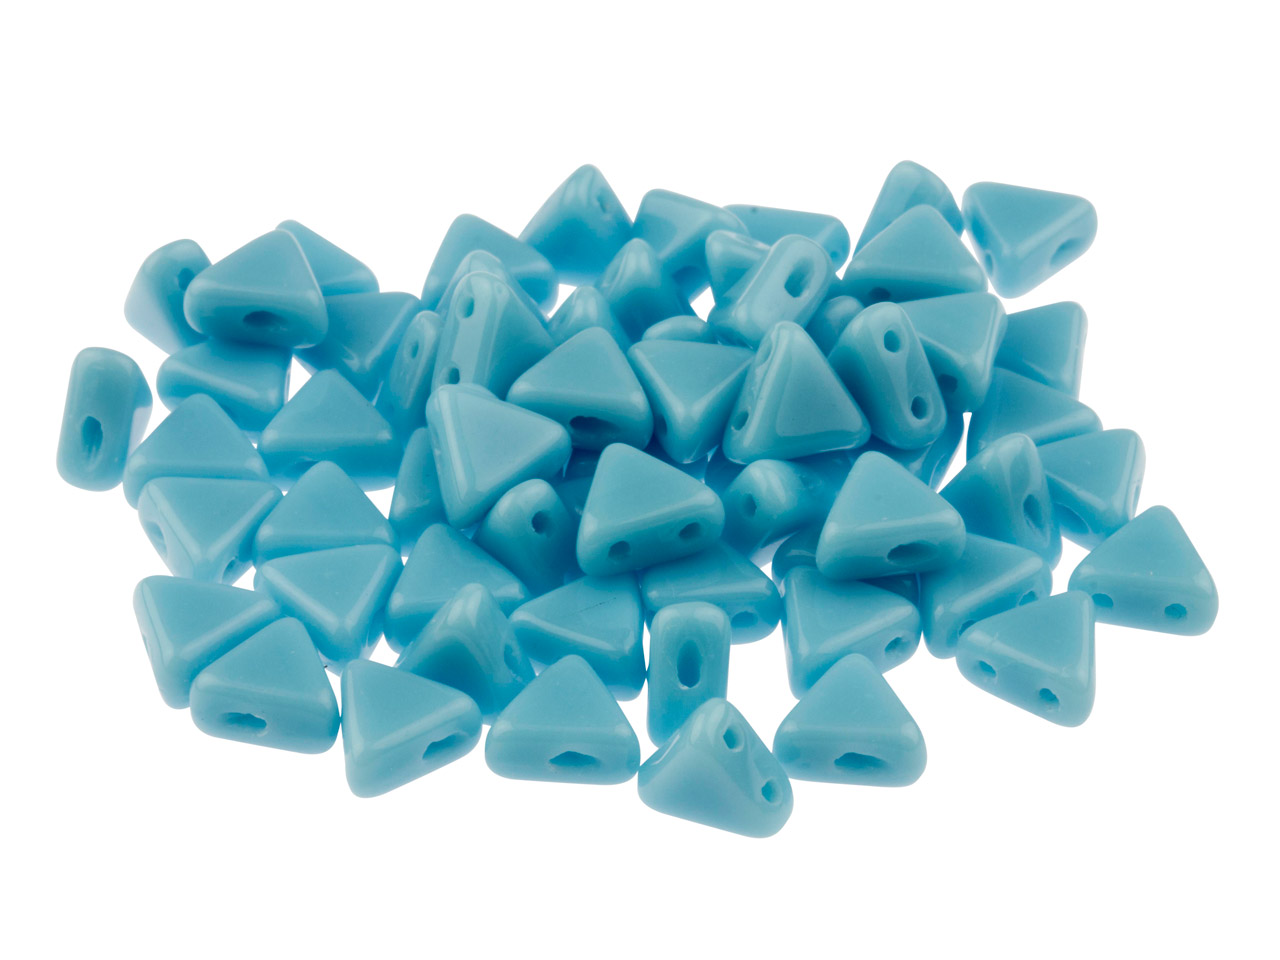 Kheops Puca 6mm Czech Beads, Opaque Turquoise, 9g Tube, Two-holed Beads